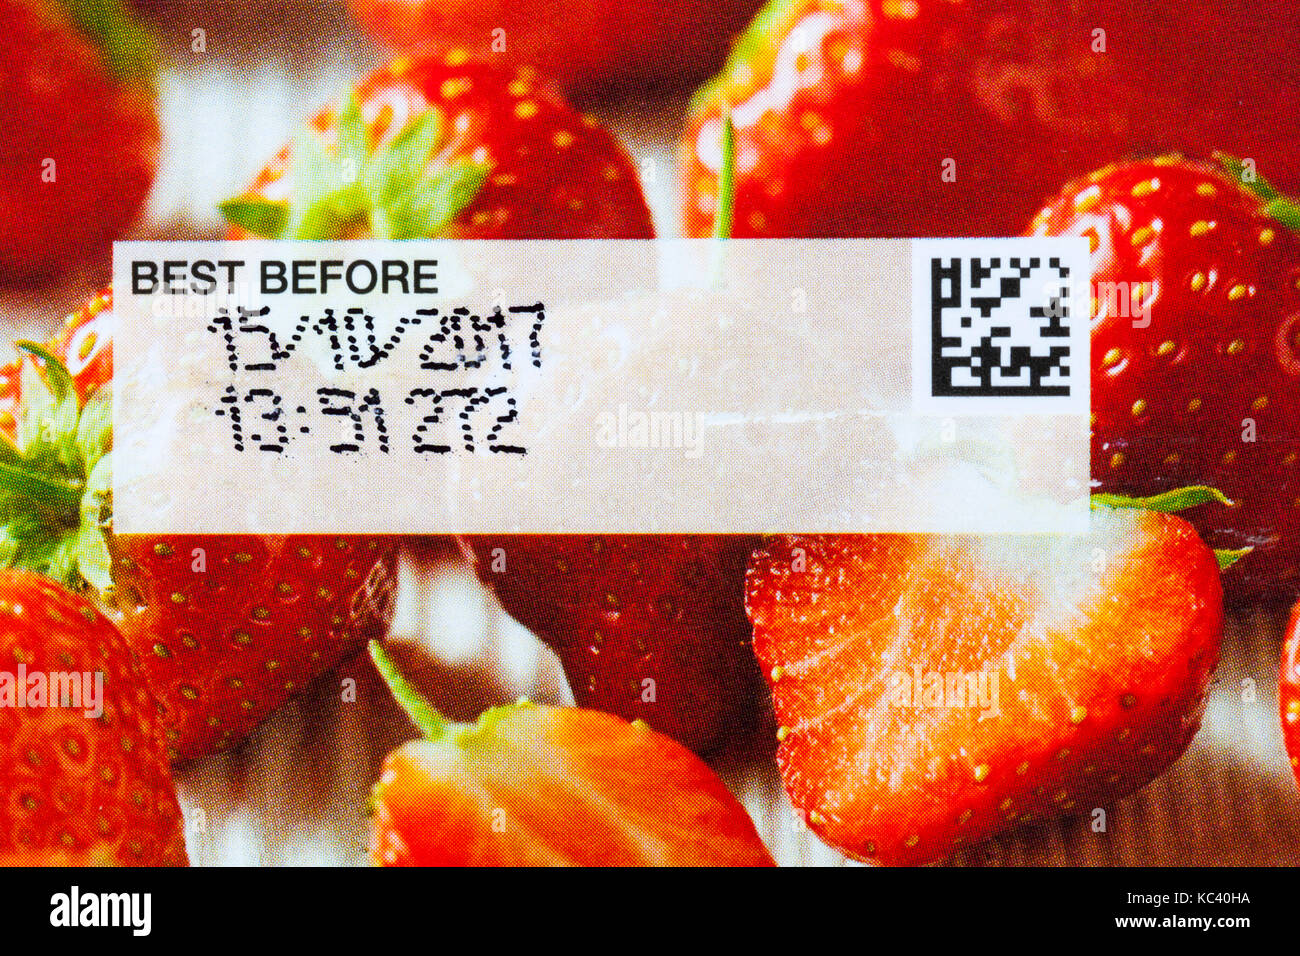 Best before 15/10/2017 date stamped on packet of M&S 4 Victoria sponge mini cakes - Stock Image